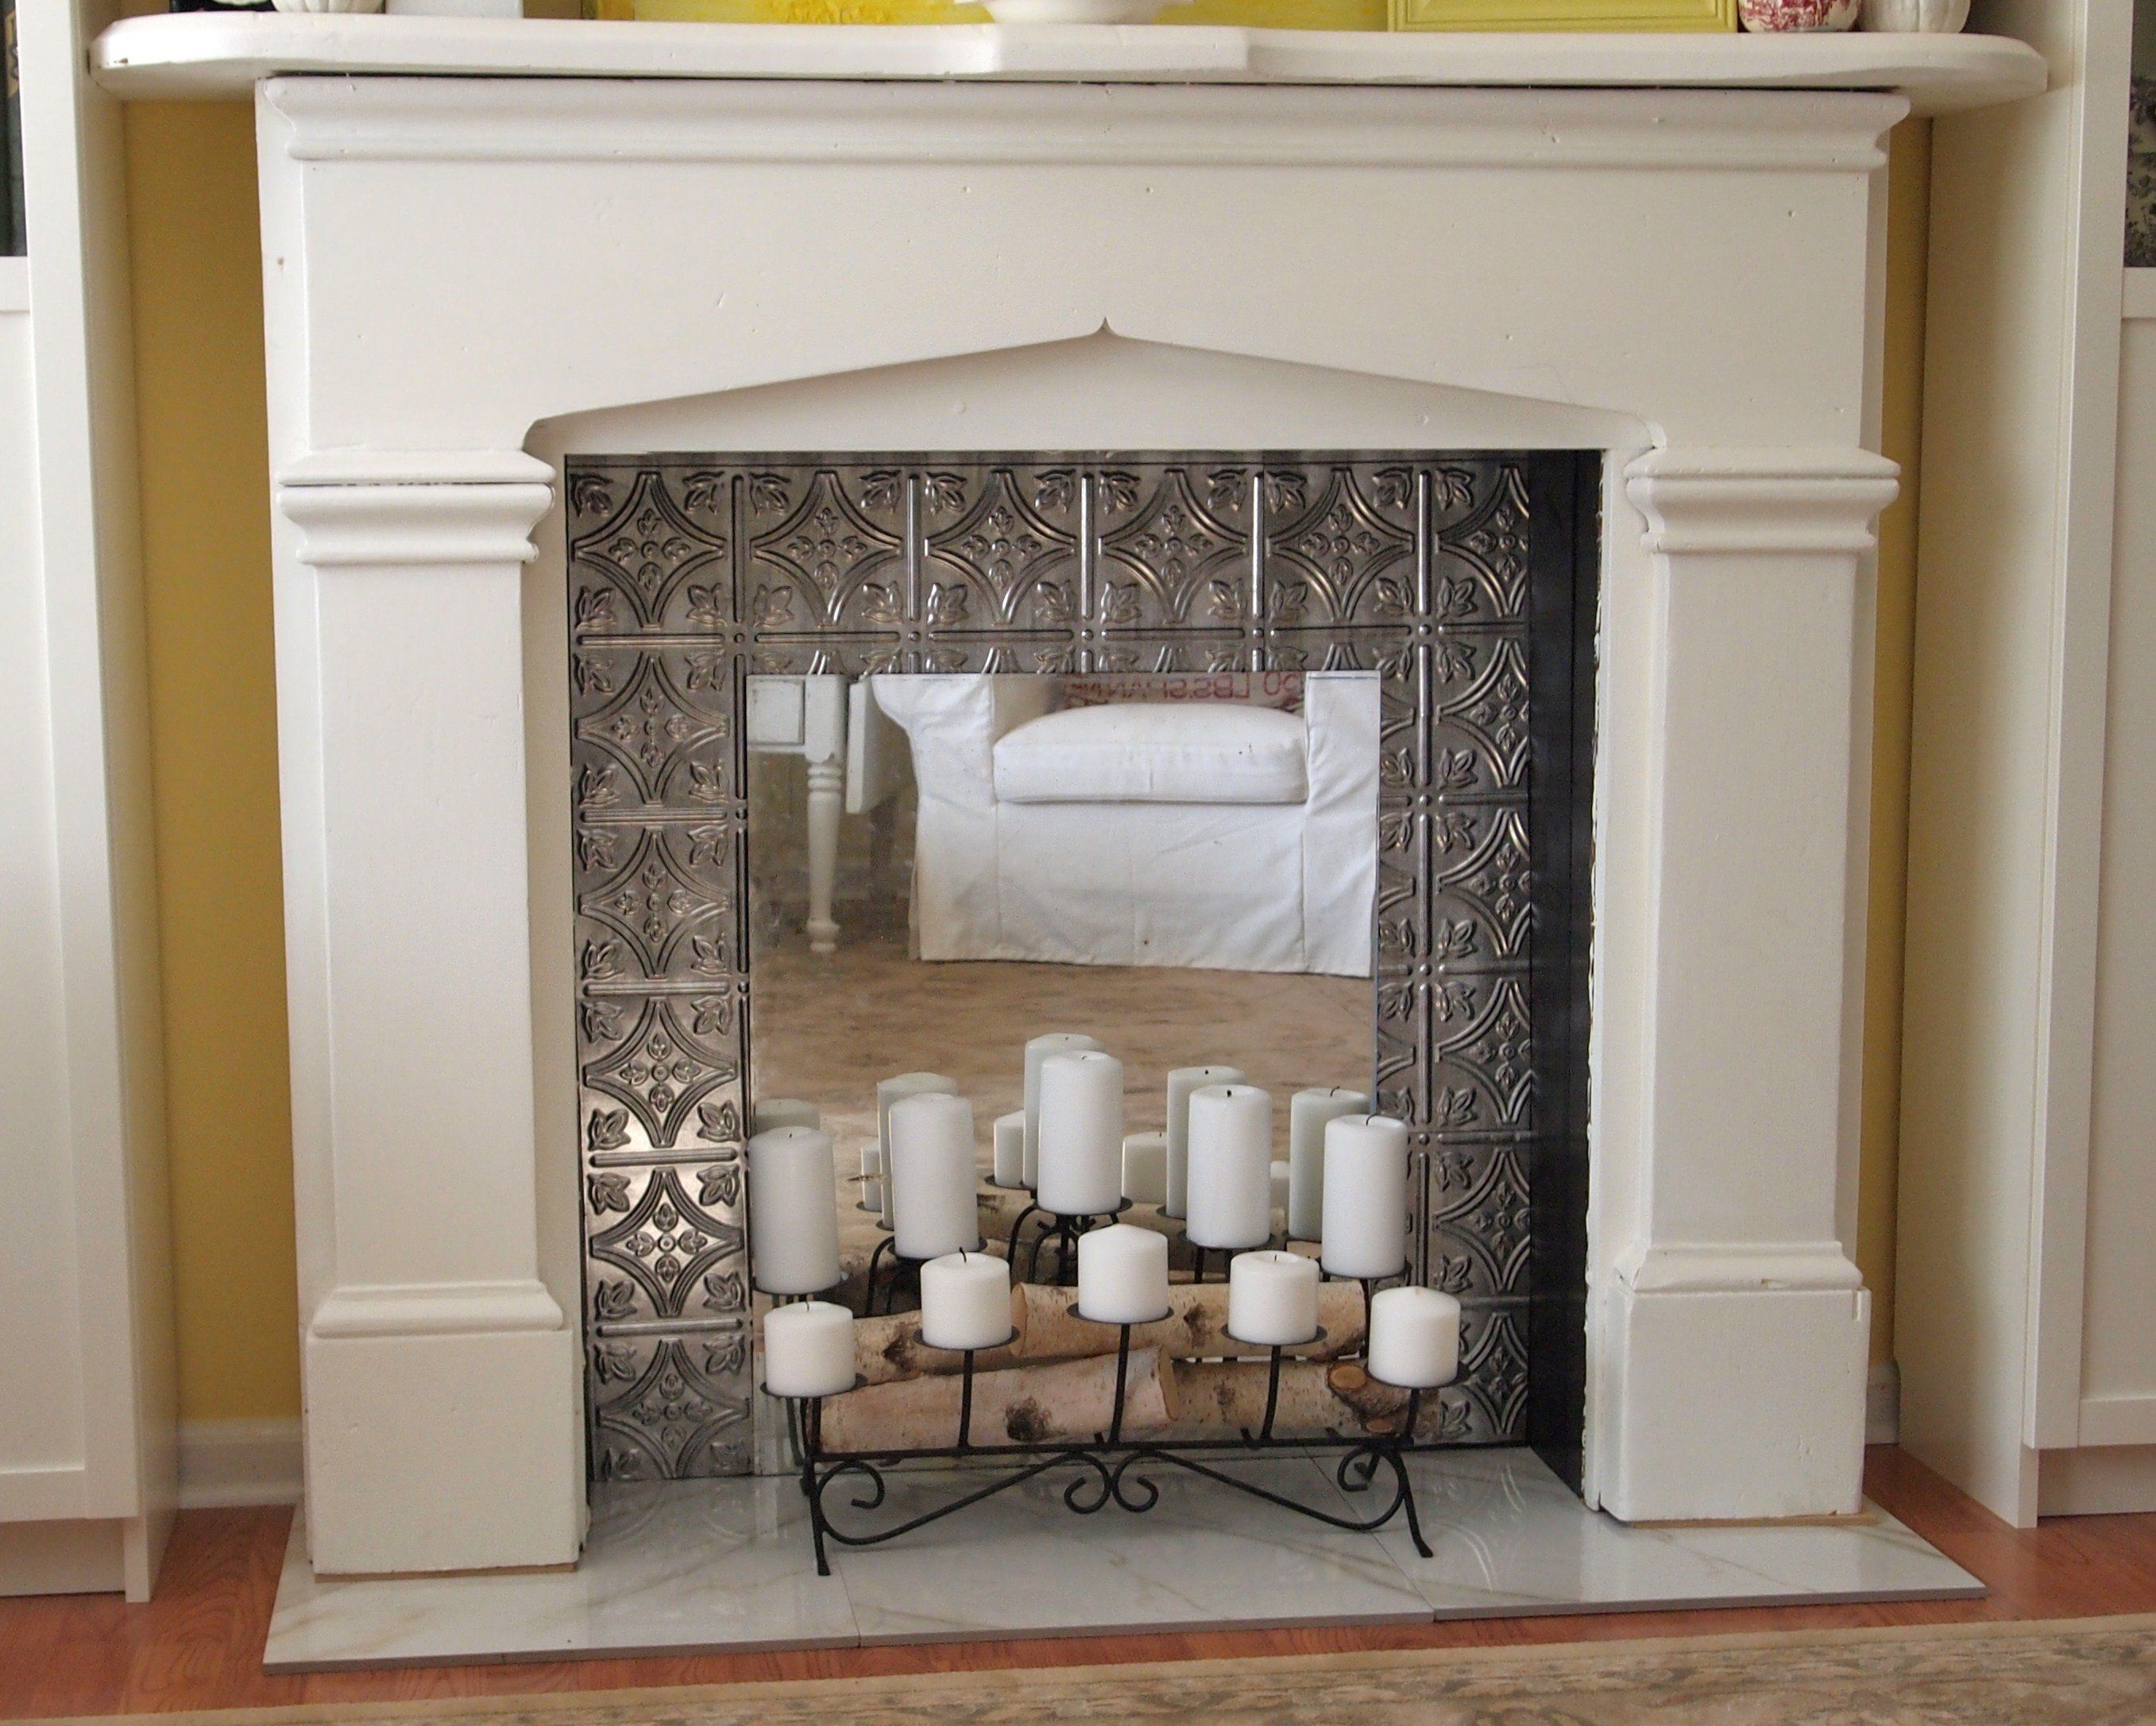 Nep Design Meubels : Decorative fireplace candle google search living room design